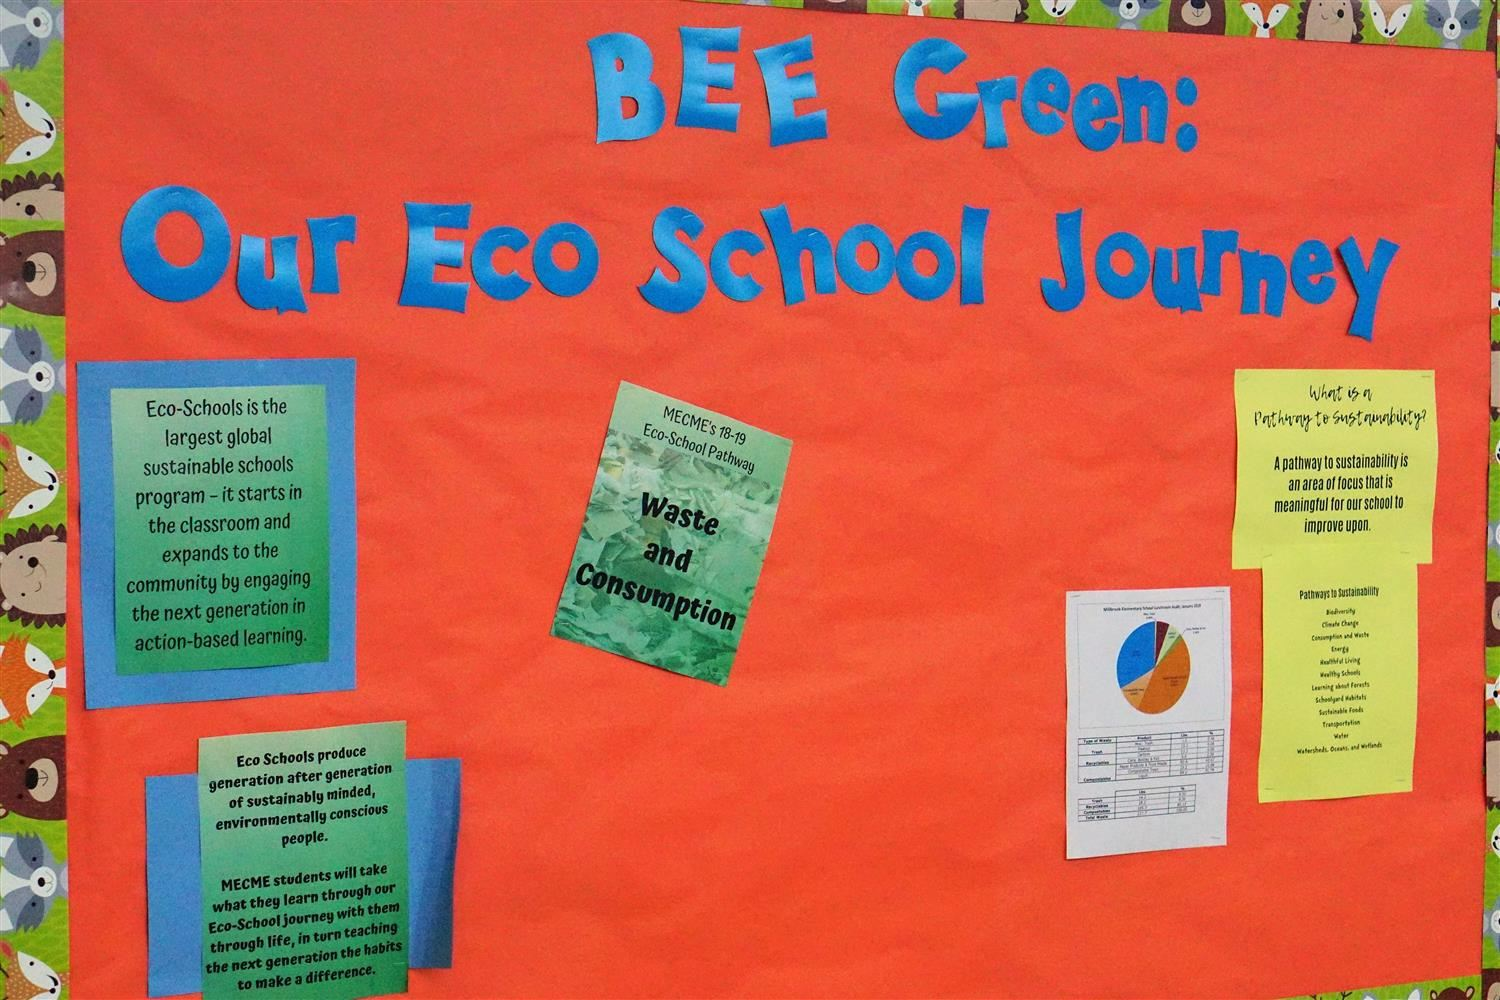 MECME Receives Bronze Award as an Eco-School